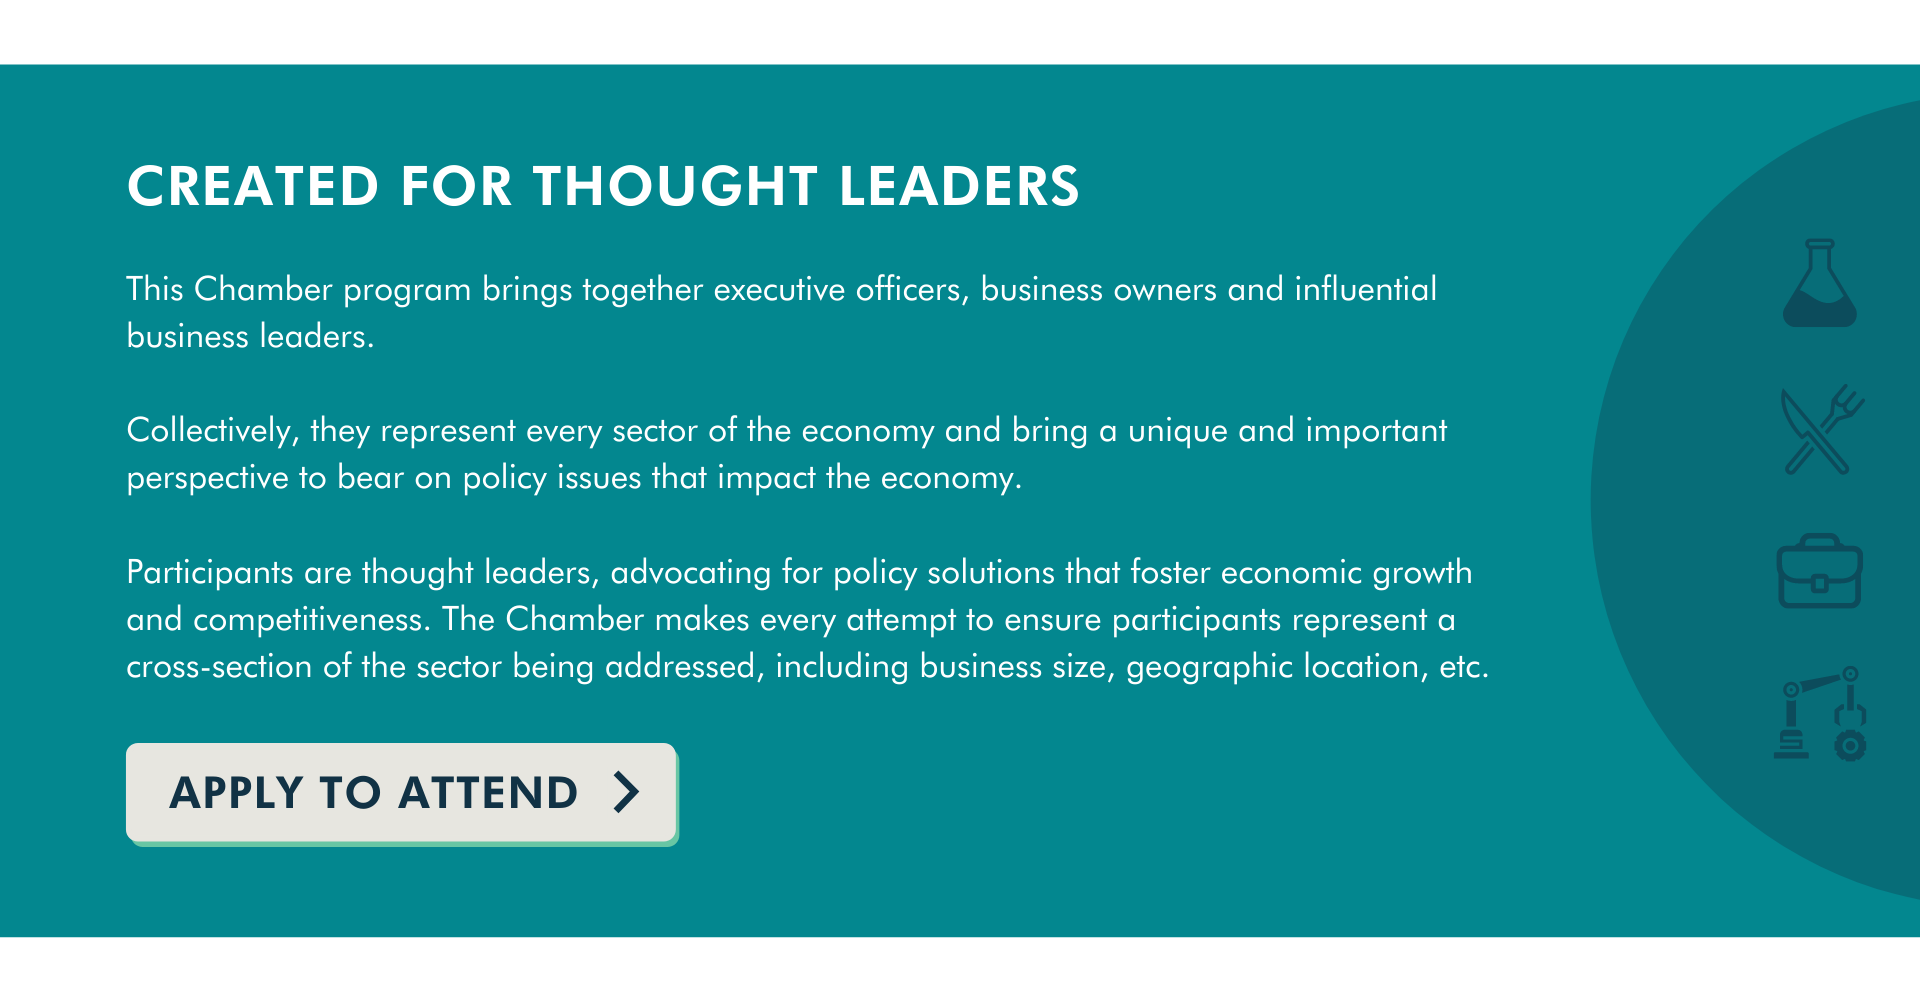 created for thought leaders industry cta apply to attend form link